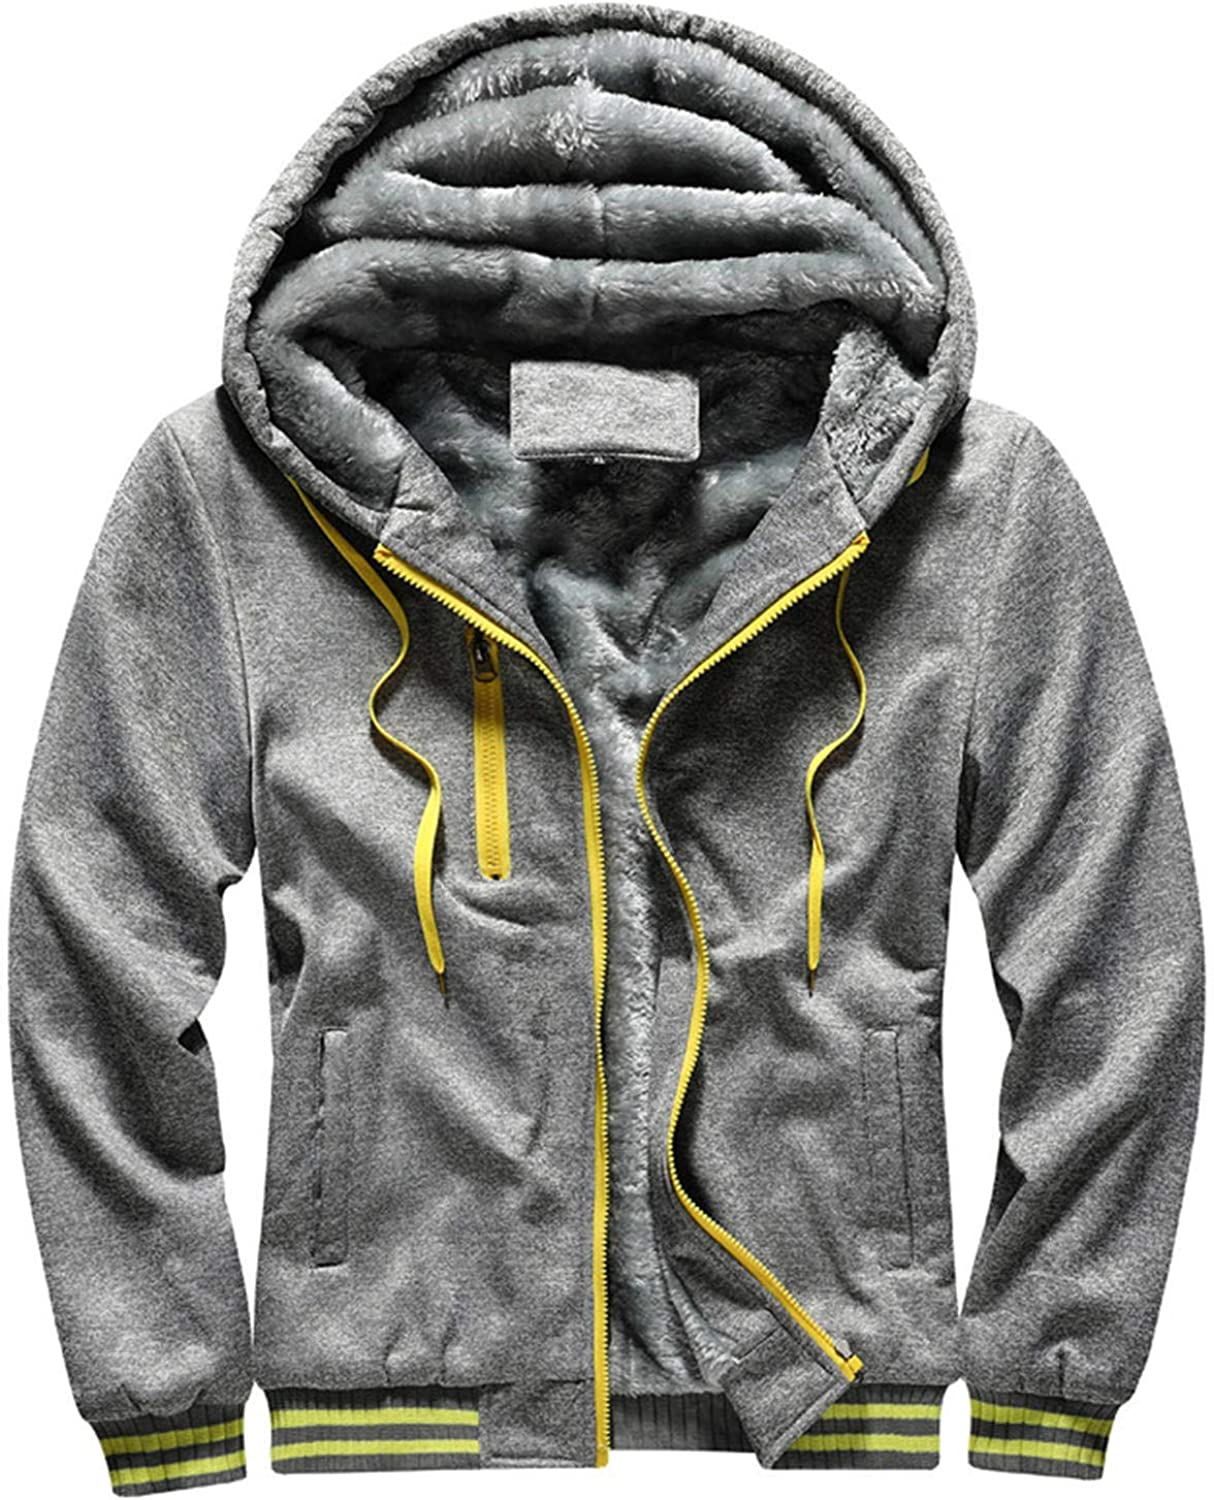 Soluo Clearance Men's Pullover Winter Workout Fleece Hoodie Jackets Full Zip Wool Warm Thick Coats (Gray,Large)